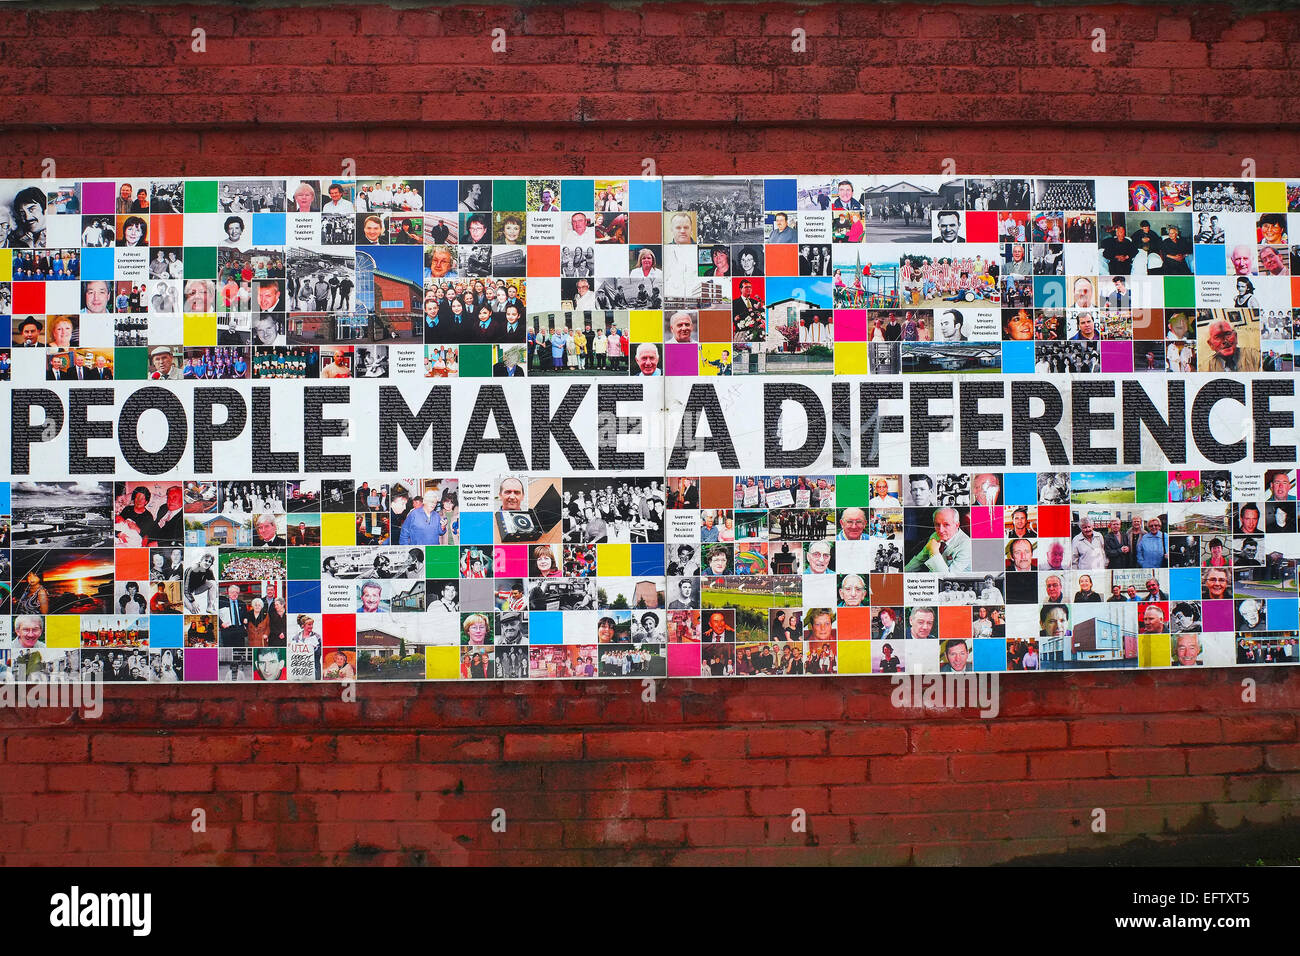 People make a difference - Stock Image